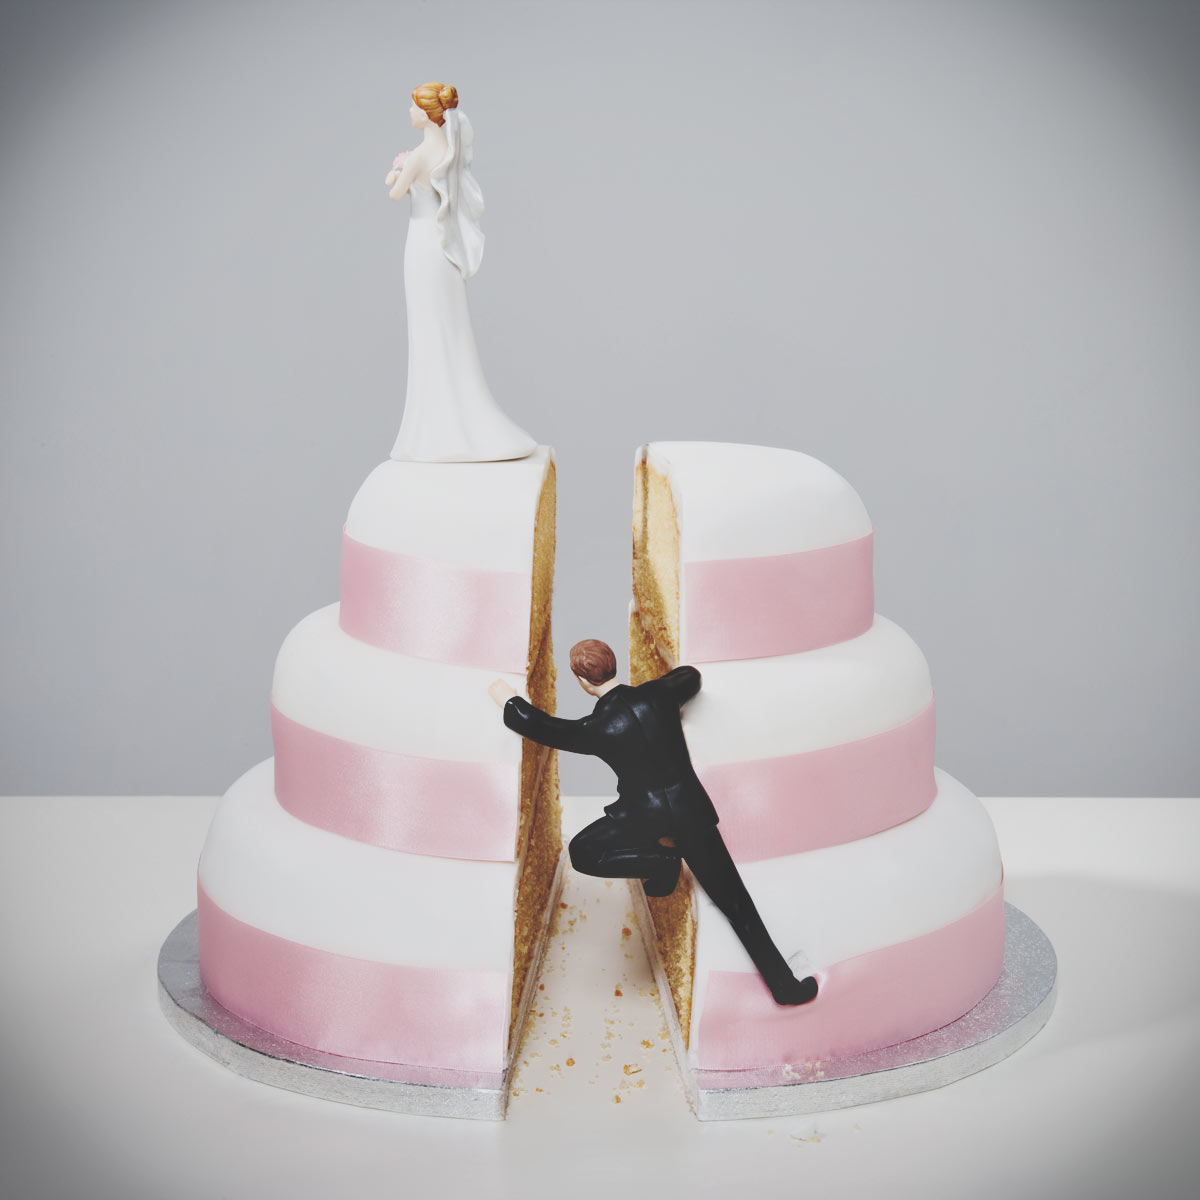 Food photographer - a concept image of male figure climbing up side of wedding cake